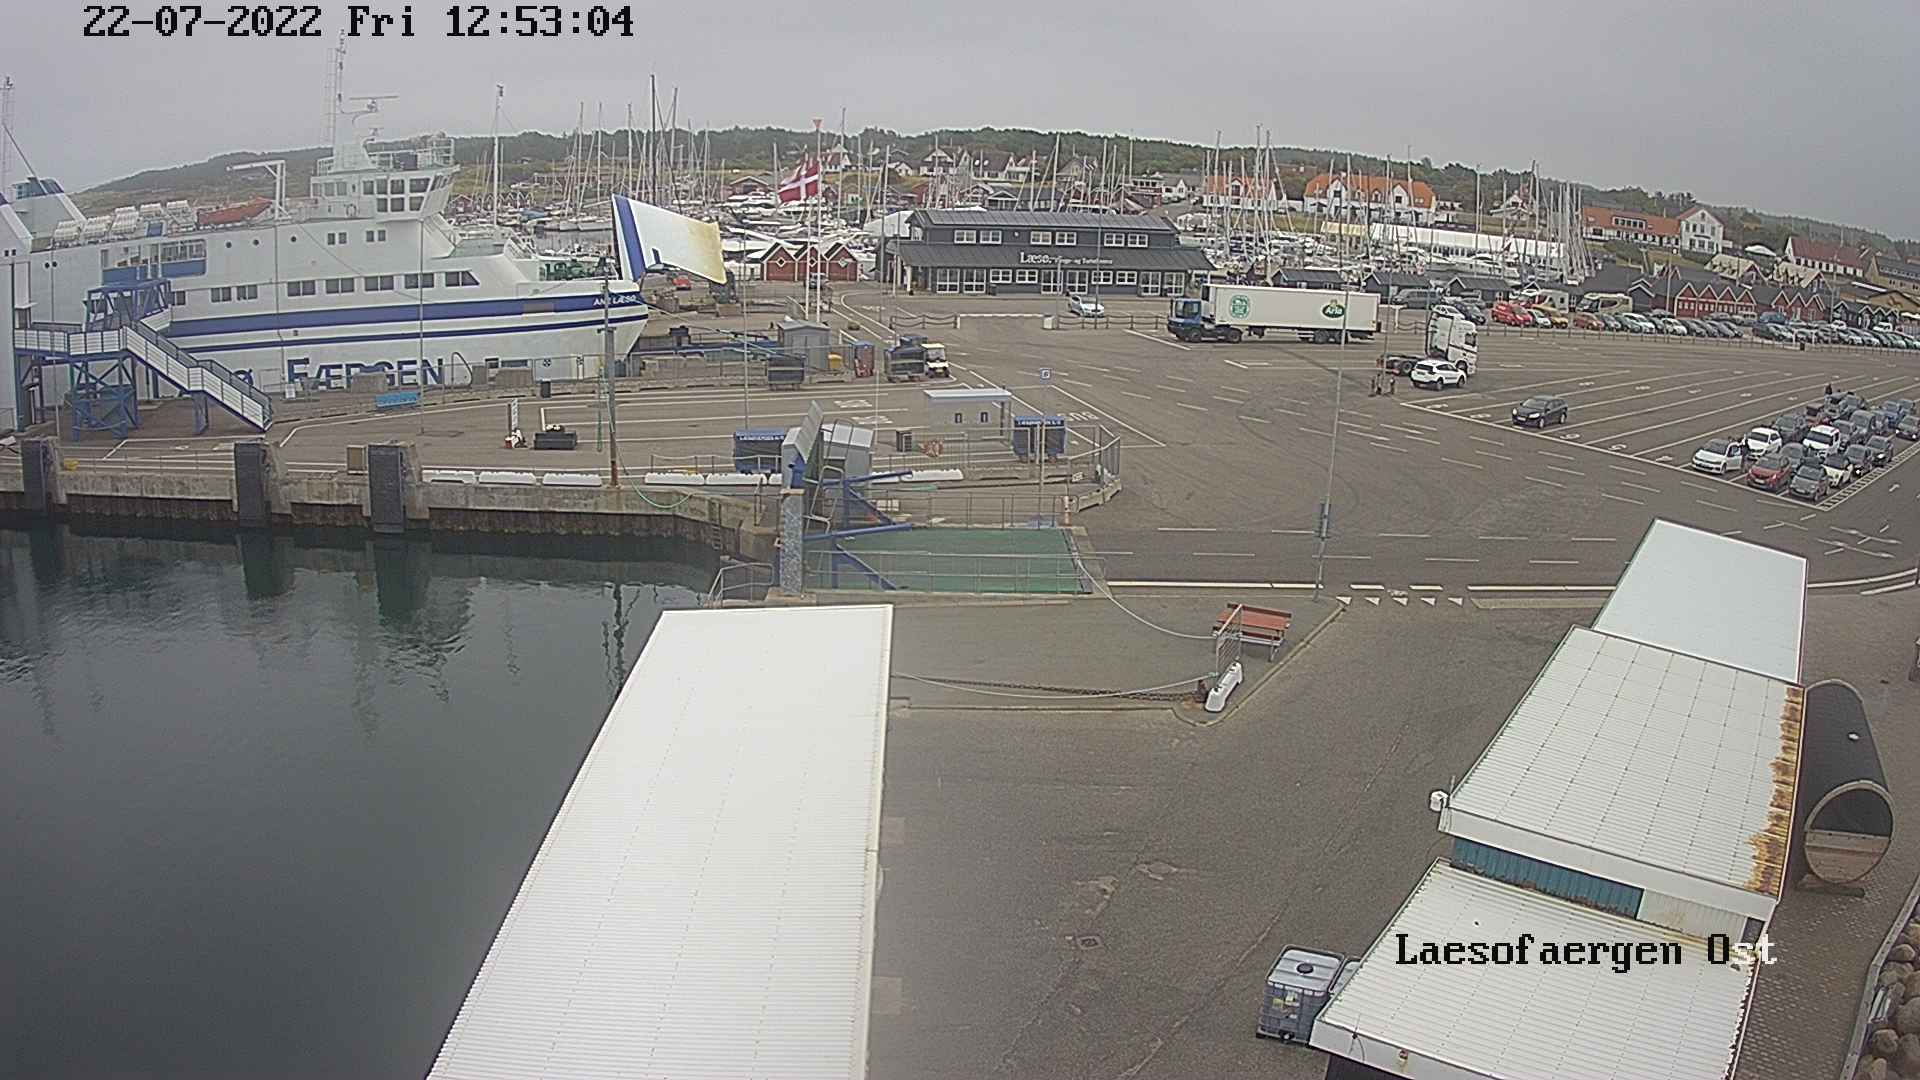 Island Laesoe, Harbour Live Webcam, Denmark